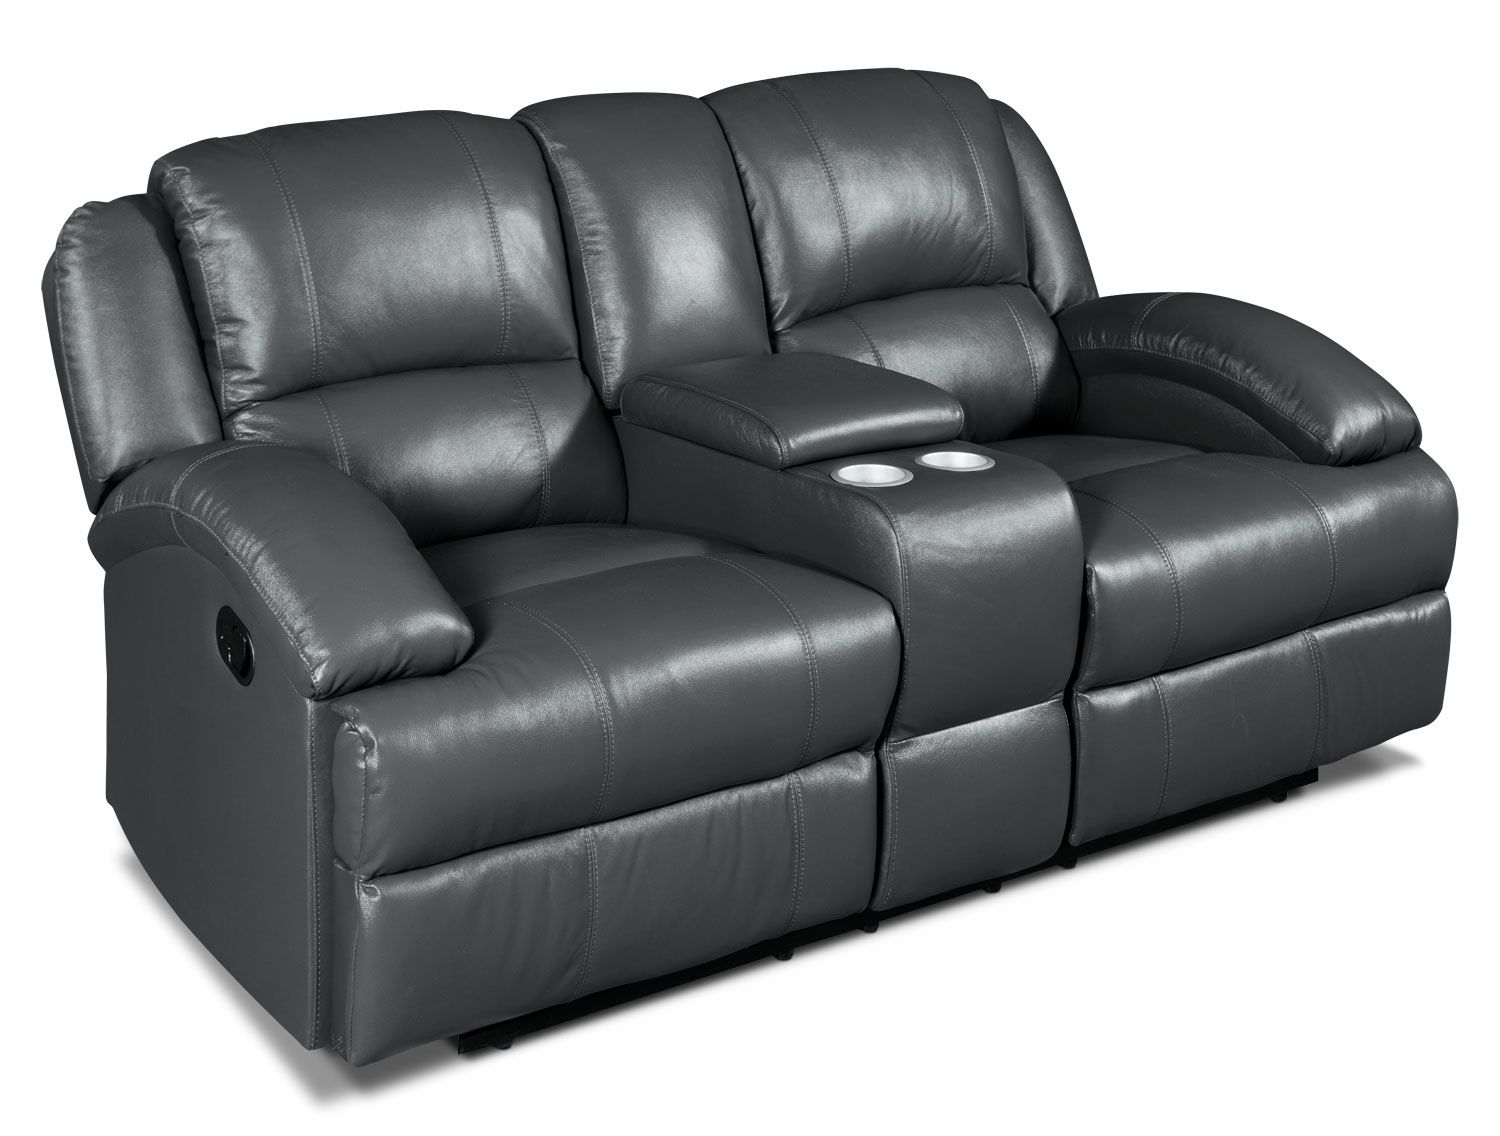 back seating sofas between loveseat forth general home theater going game discussions avs media reviews ll and rooms forum